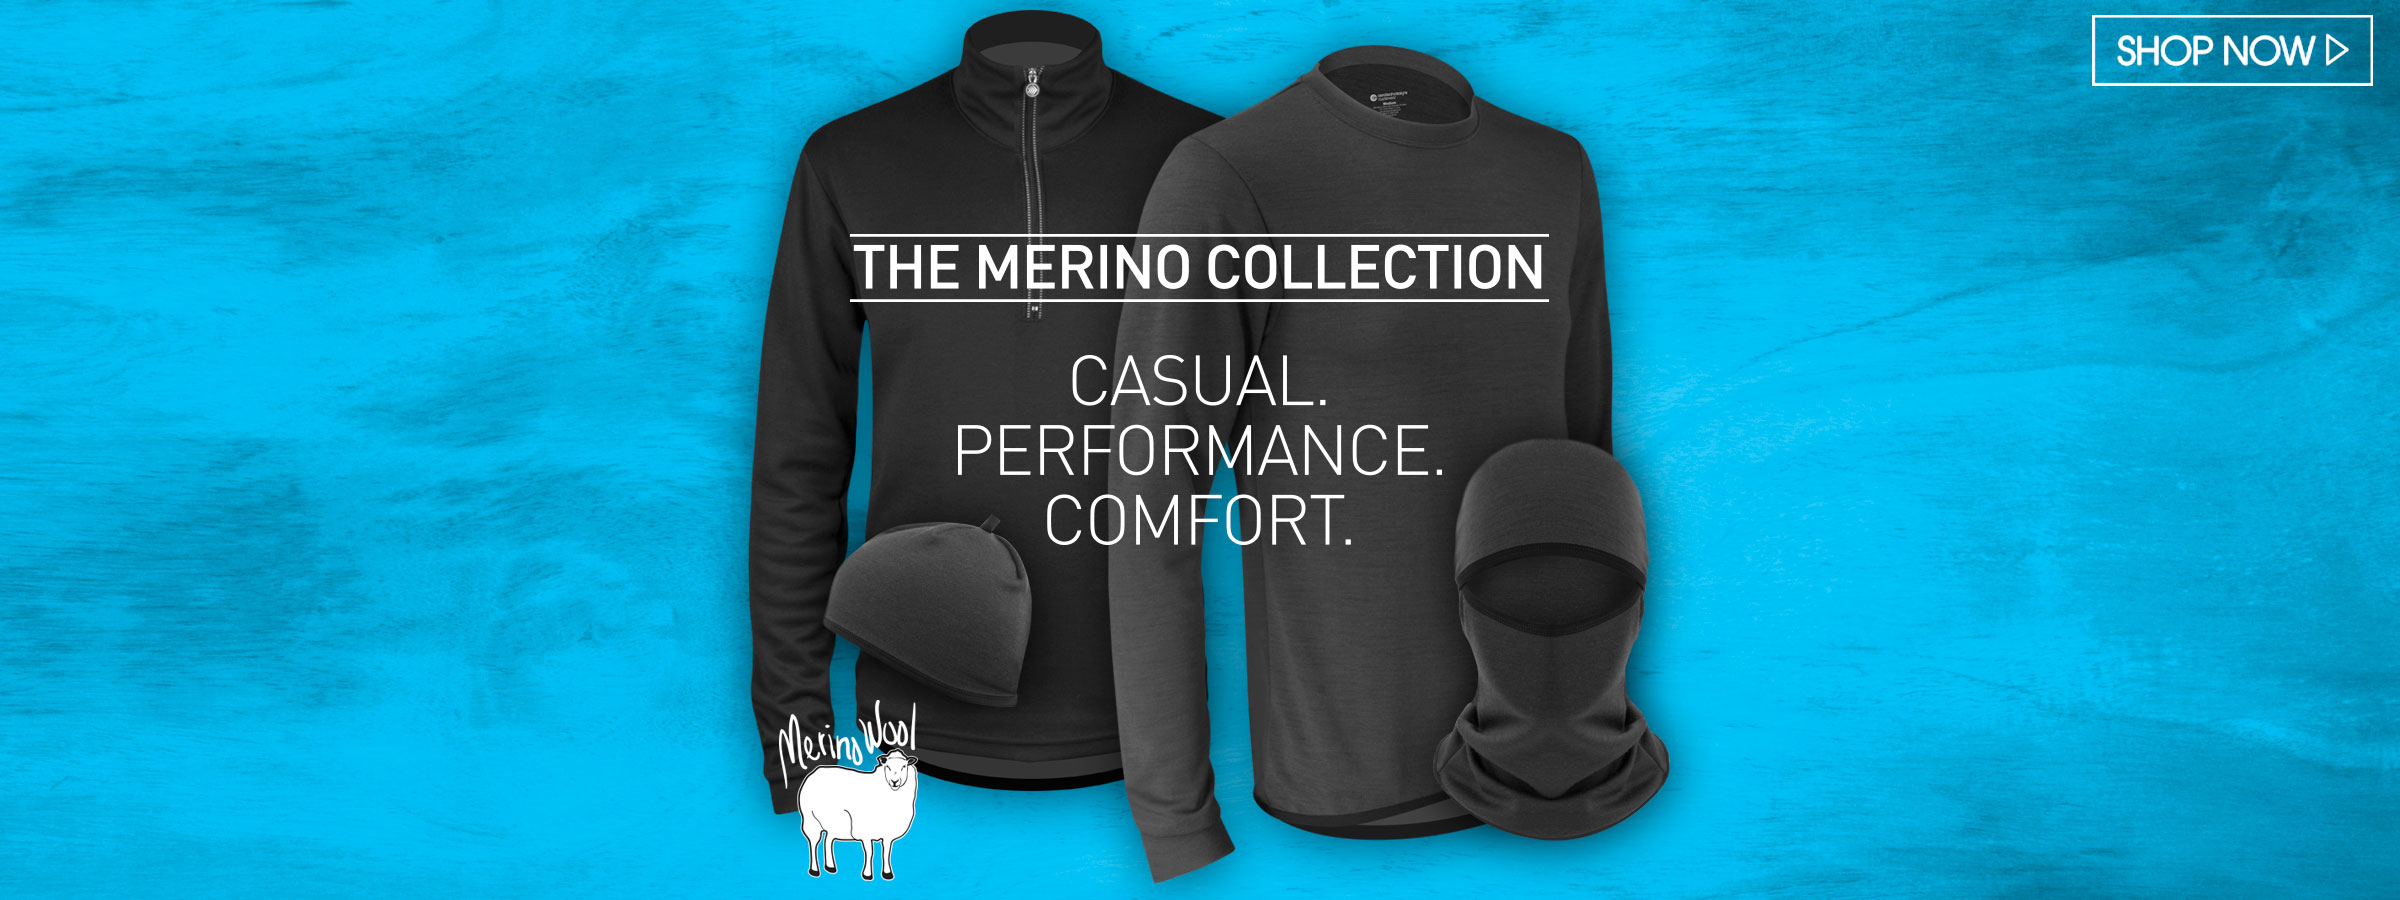 merino wool cycling apparel collection